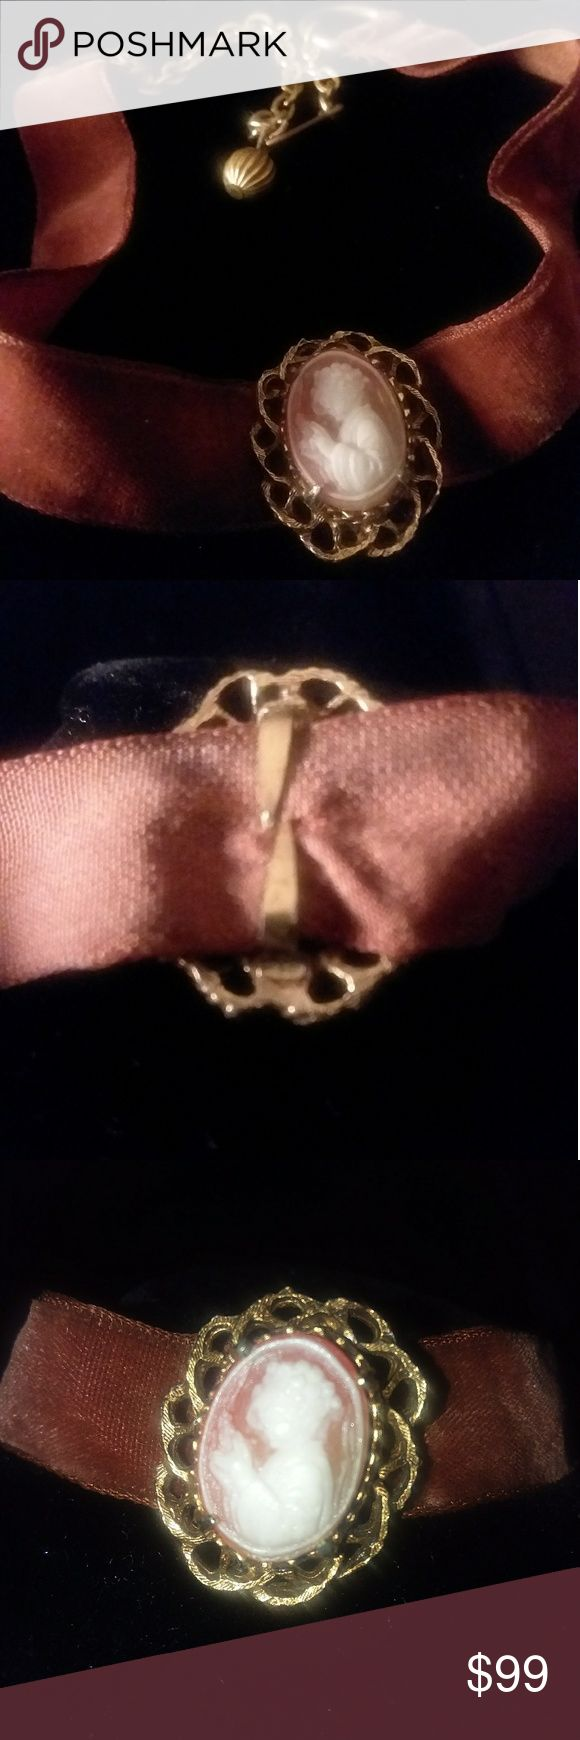 💞ORIGINAL 1950's VINTAGE FLORENZA CHOKER💞 This beautiful 1950's FLORENZA Chocker was a sweet find all original highly appreciated treasure.....  Hand carved VICTORIAN CAMEO.... Velvet Collar Band.... Vintage Closure...  ALL ORIGINAL Parts.....  MUST SEE TO APPRECIATE....  SIGNATURE MARKING POSTED......  COME IN BOX FOR PROPER MAINTENANCE...  BUNDLE 3 OR MORE FOR BIGGER DISCOUNT.. Florenza Accessories